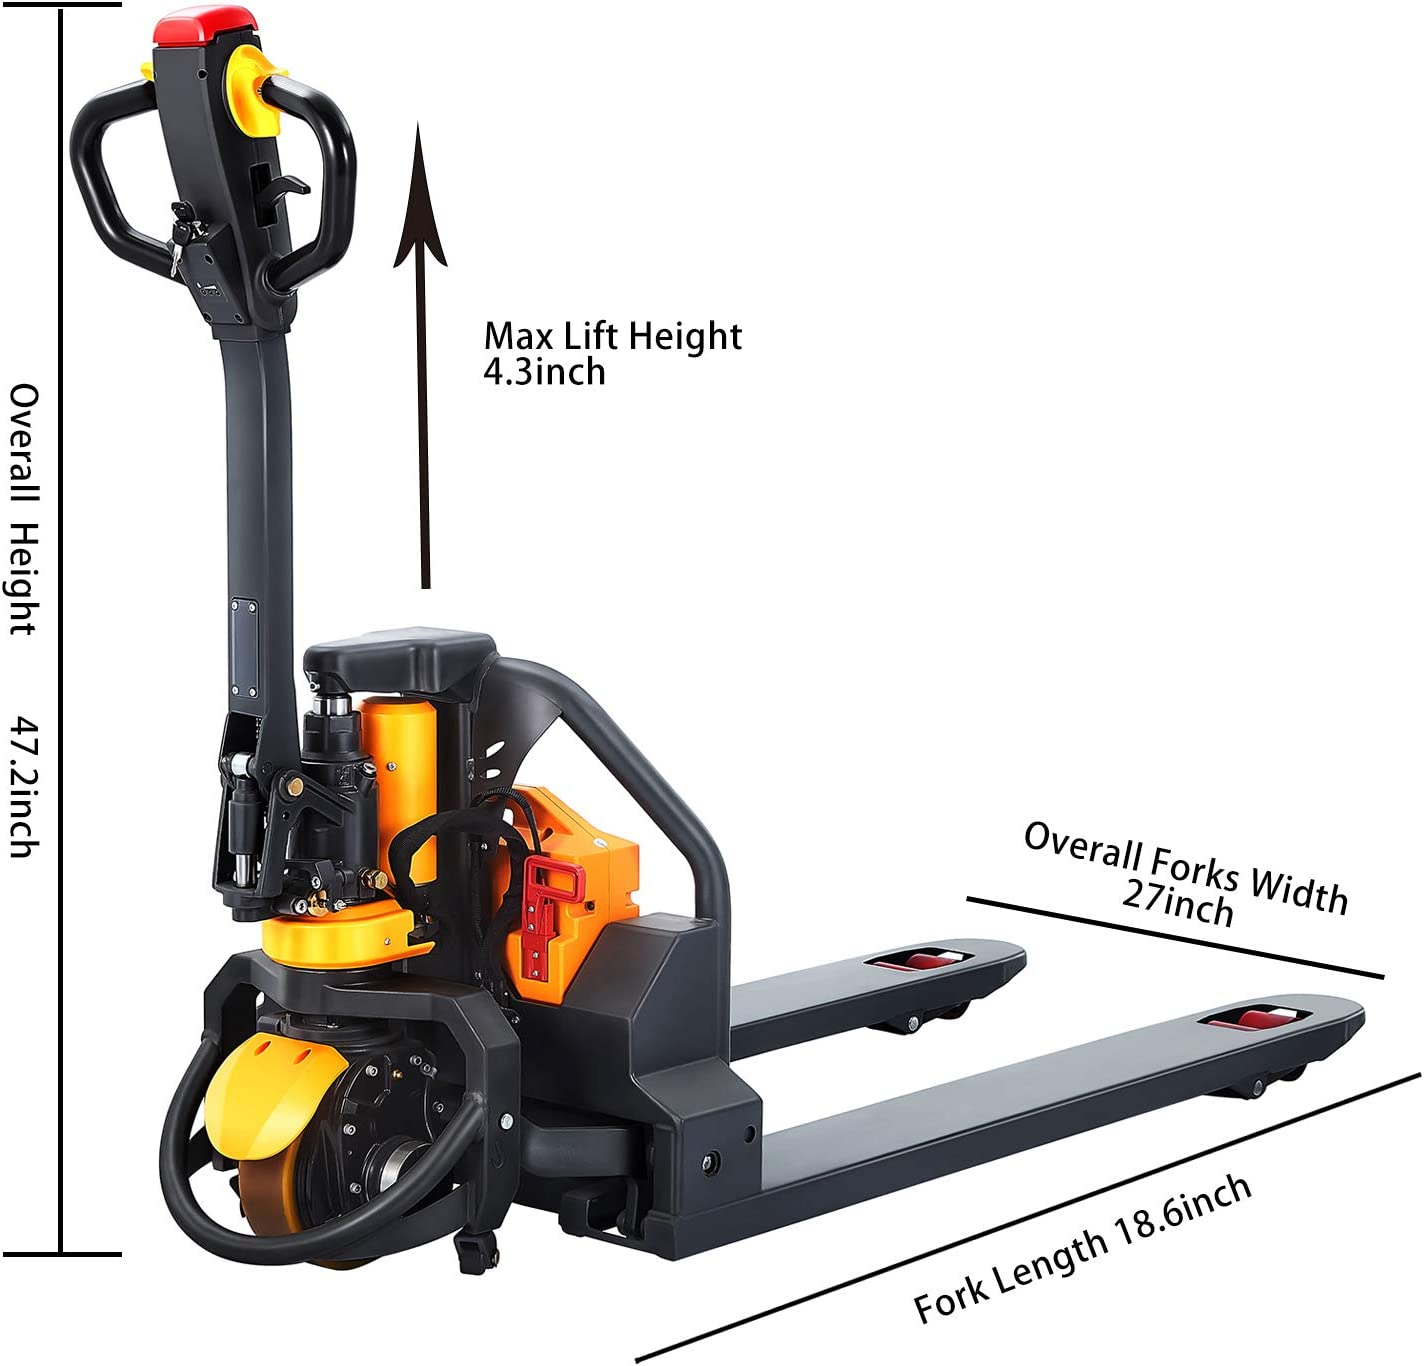 Full Electric Pallet Jack Truck 3300 Lbs 48x27 Fork